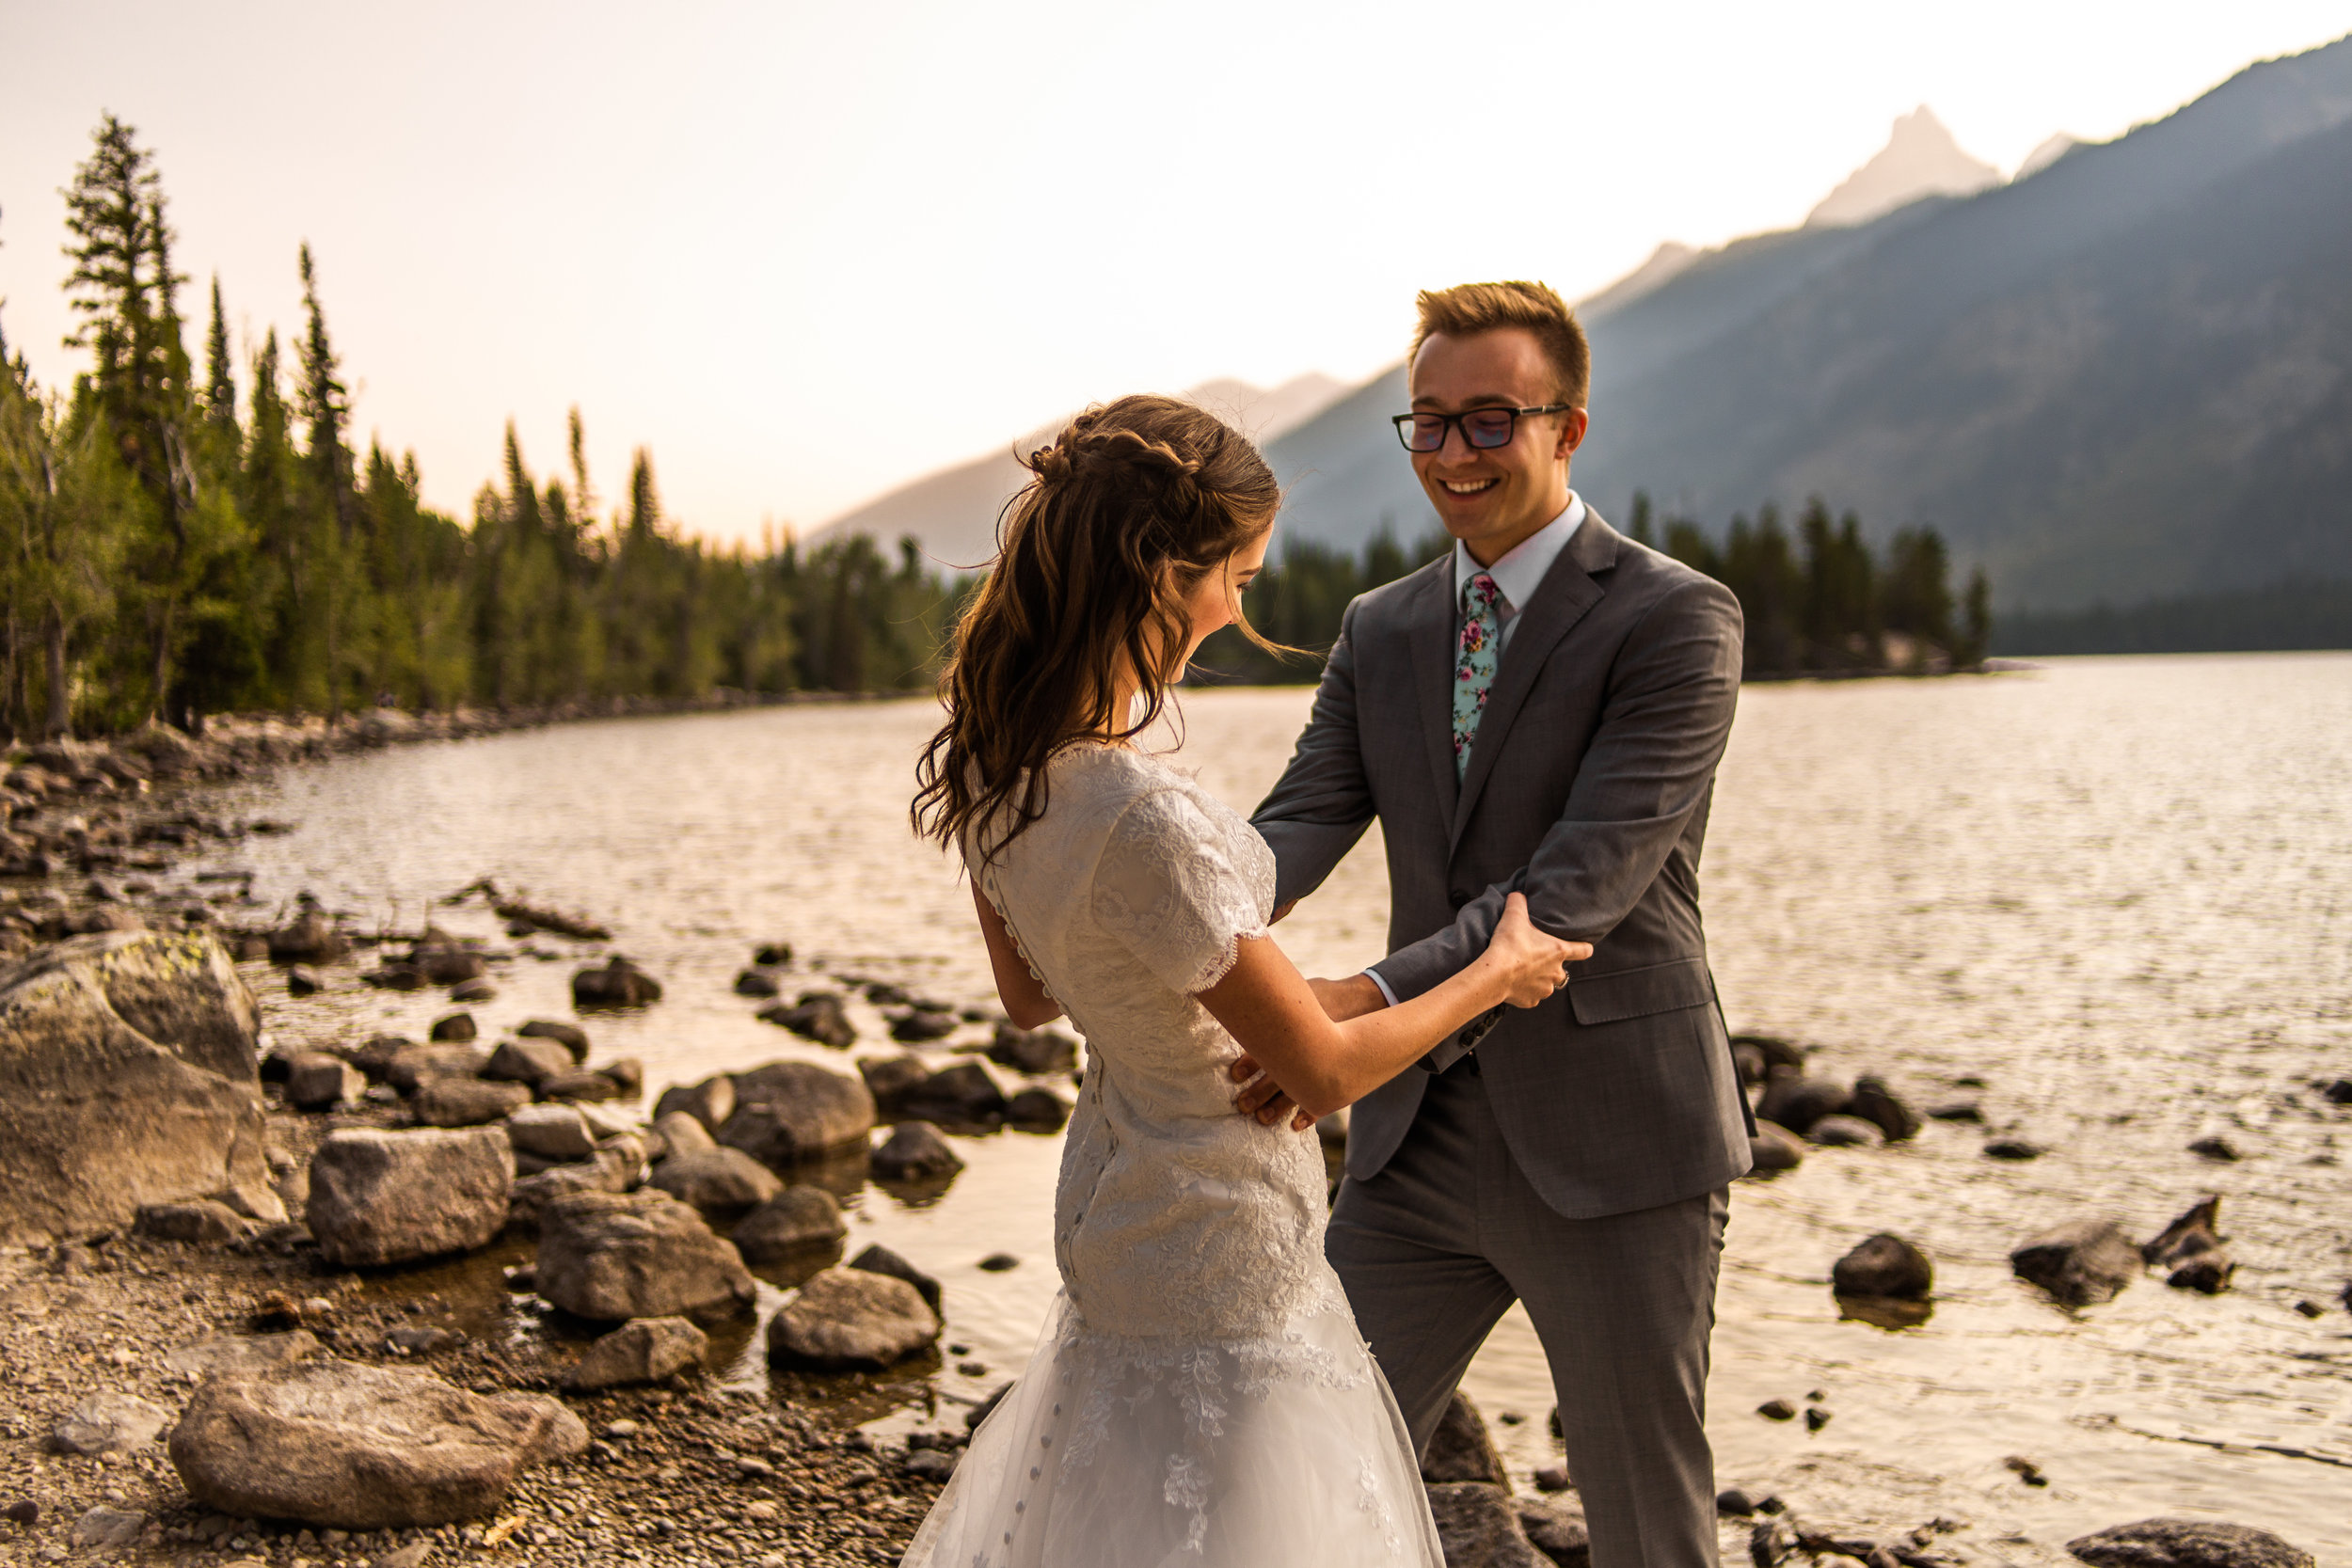 Grand-Teton-National-Park-Bridal-Session27.jpg